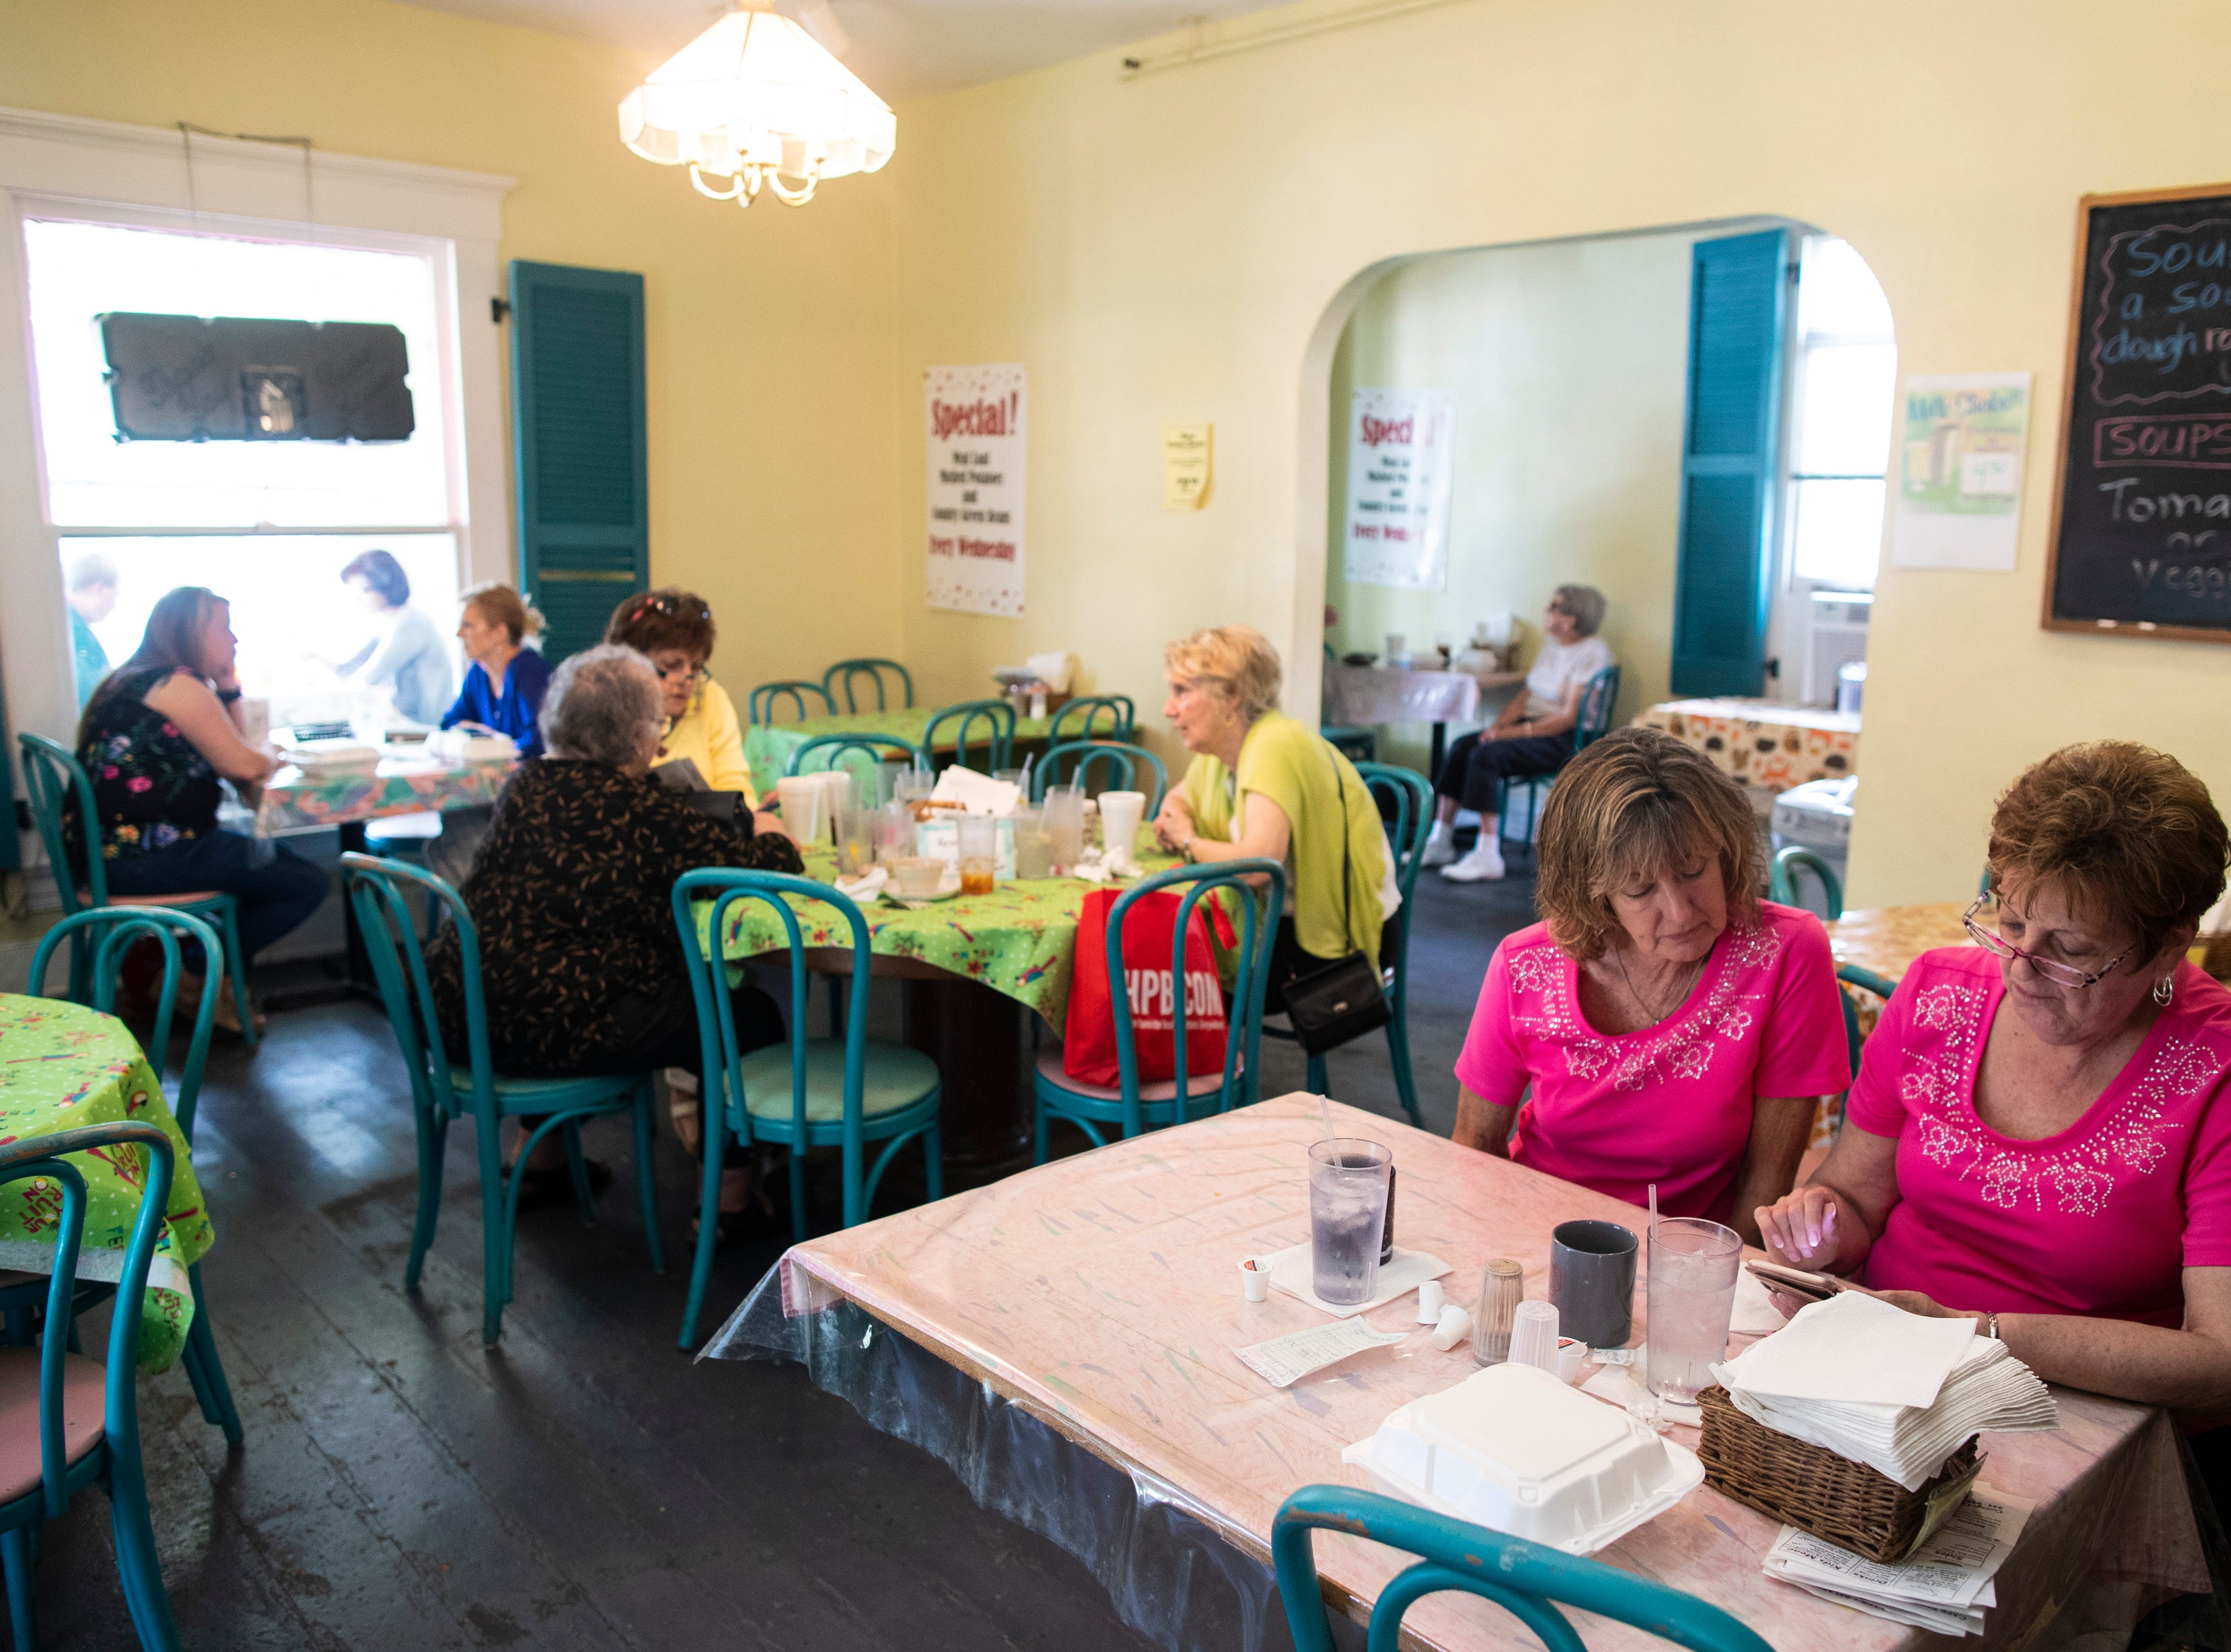 Patrons dine during lunch hour inside the Cottage Cafe in the Middletown neighborhood. May 8, 2019